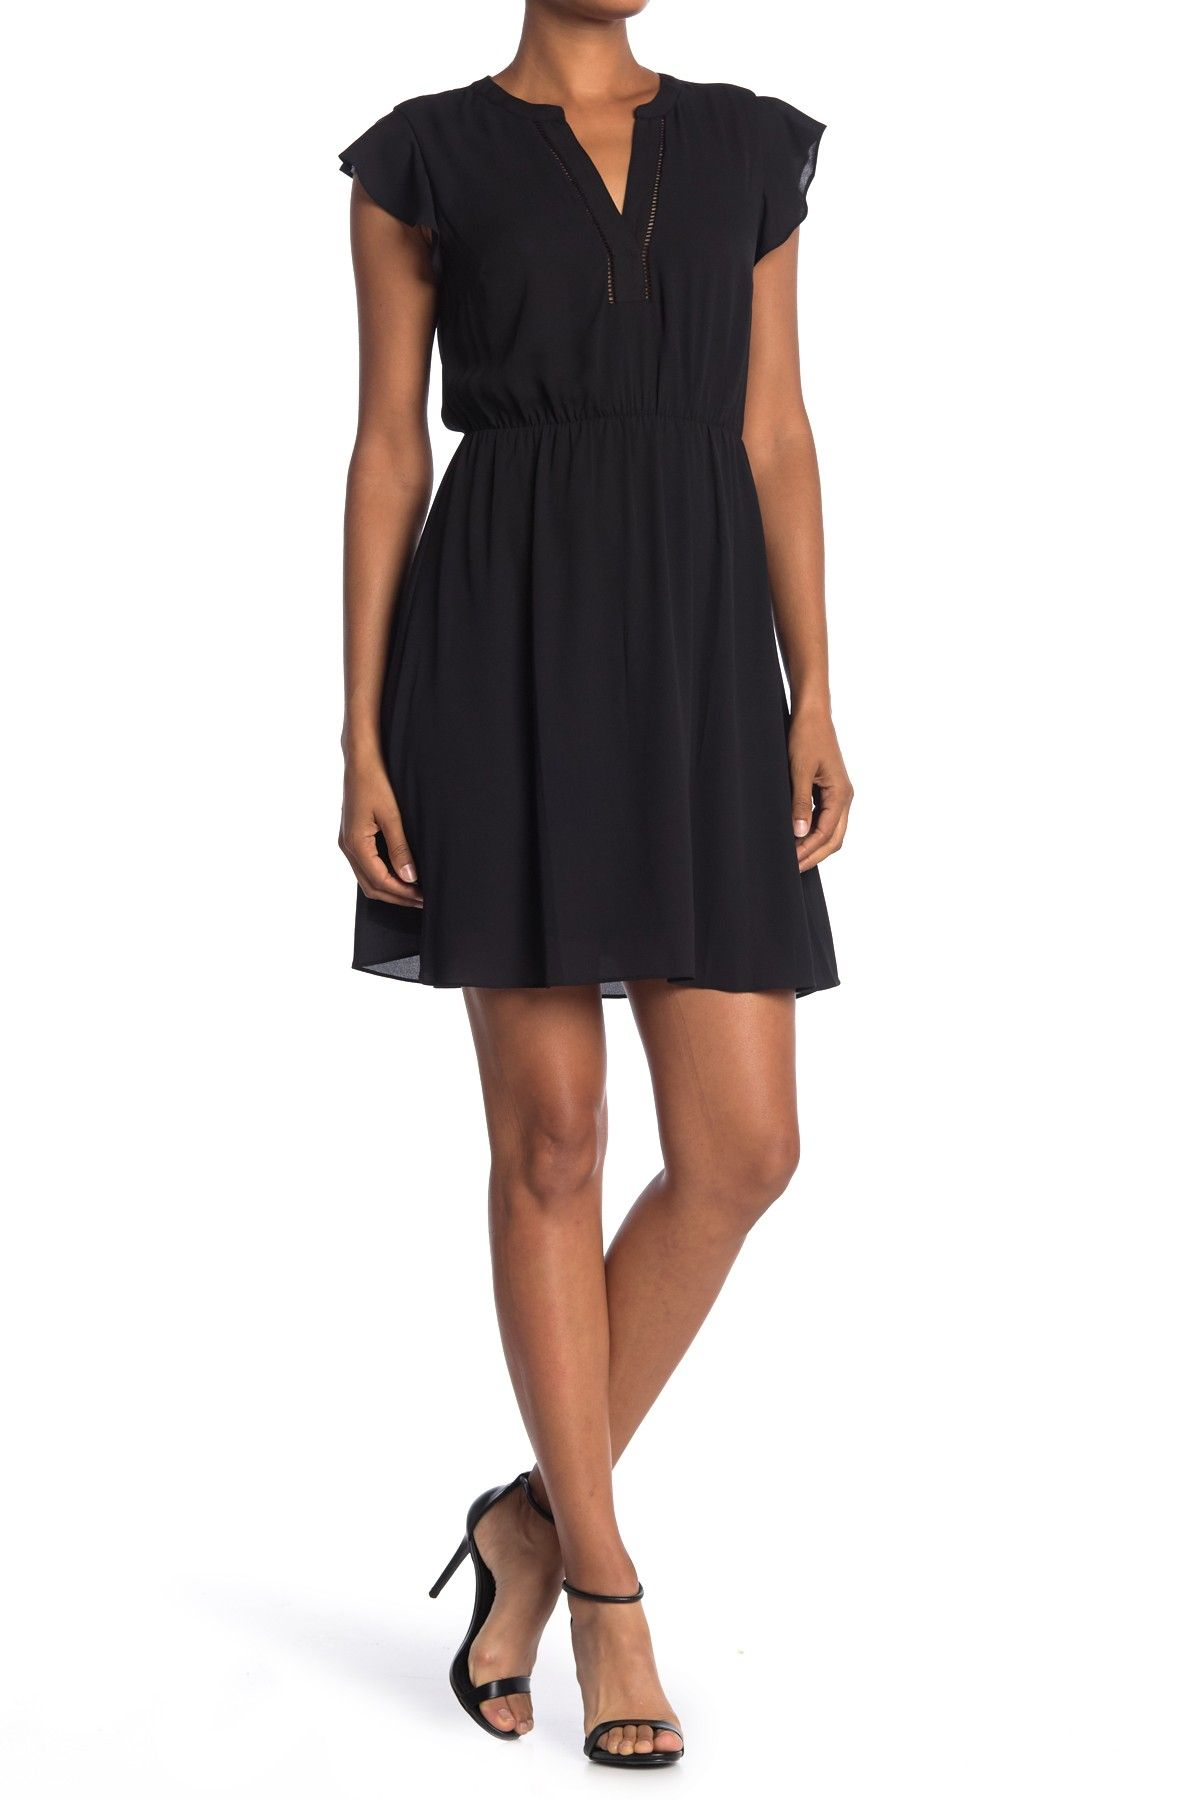 Ruffle Sleeve Split Neck Mini Dress by Collective Concepts on @nordstrom_rack